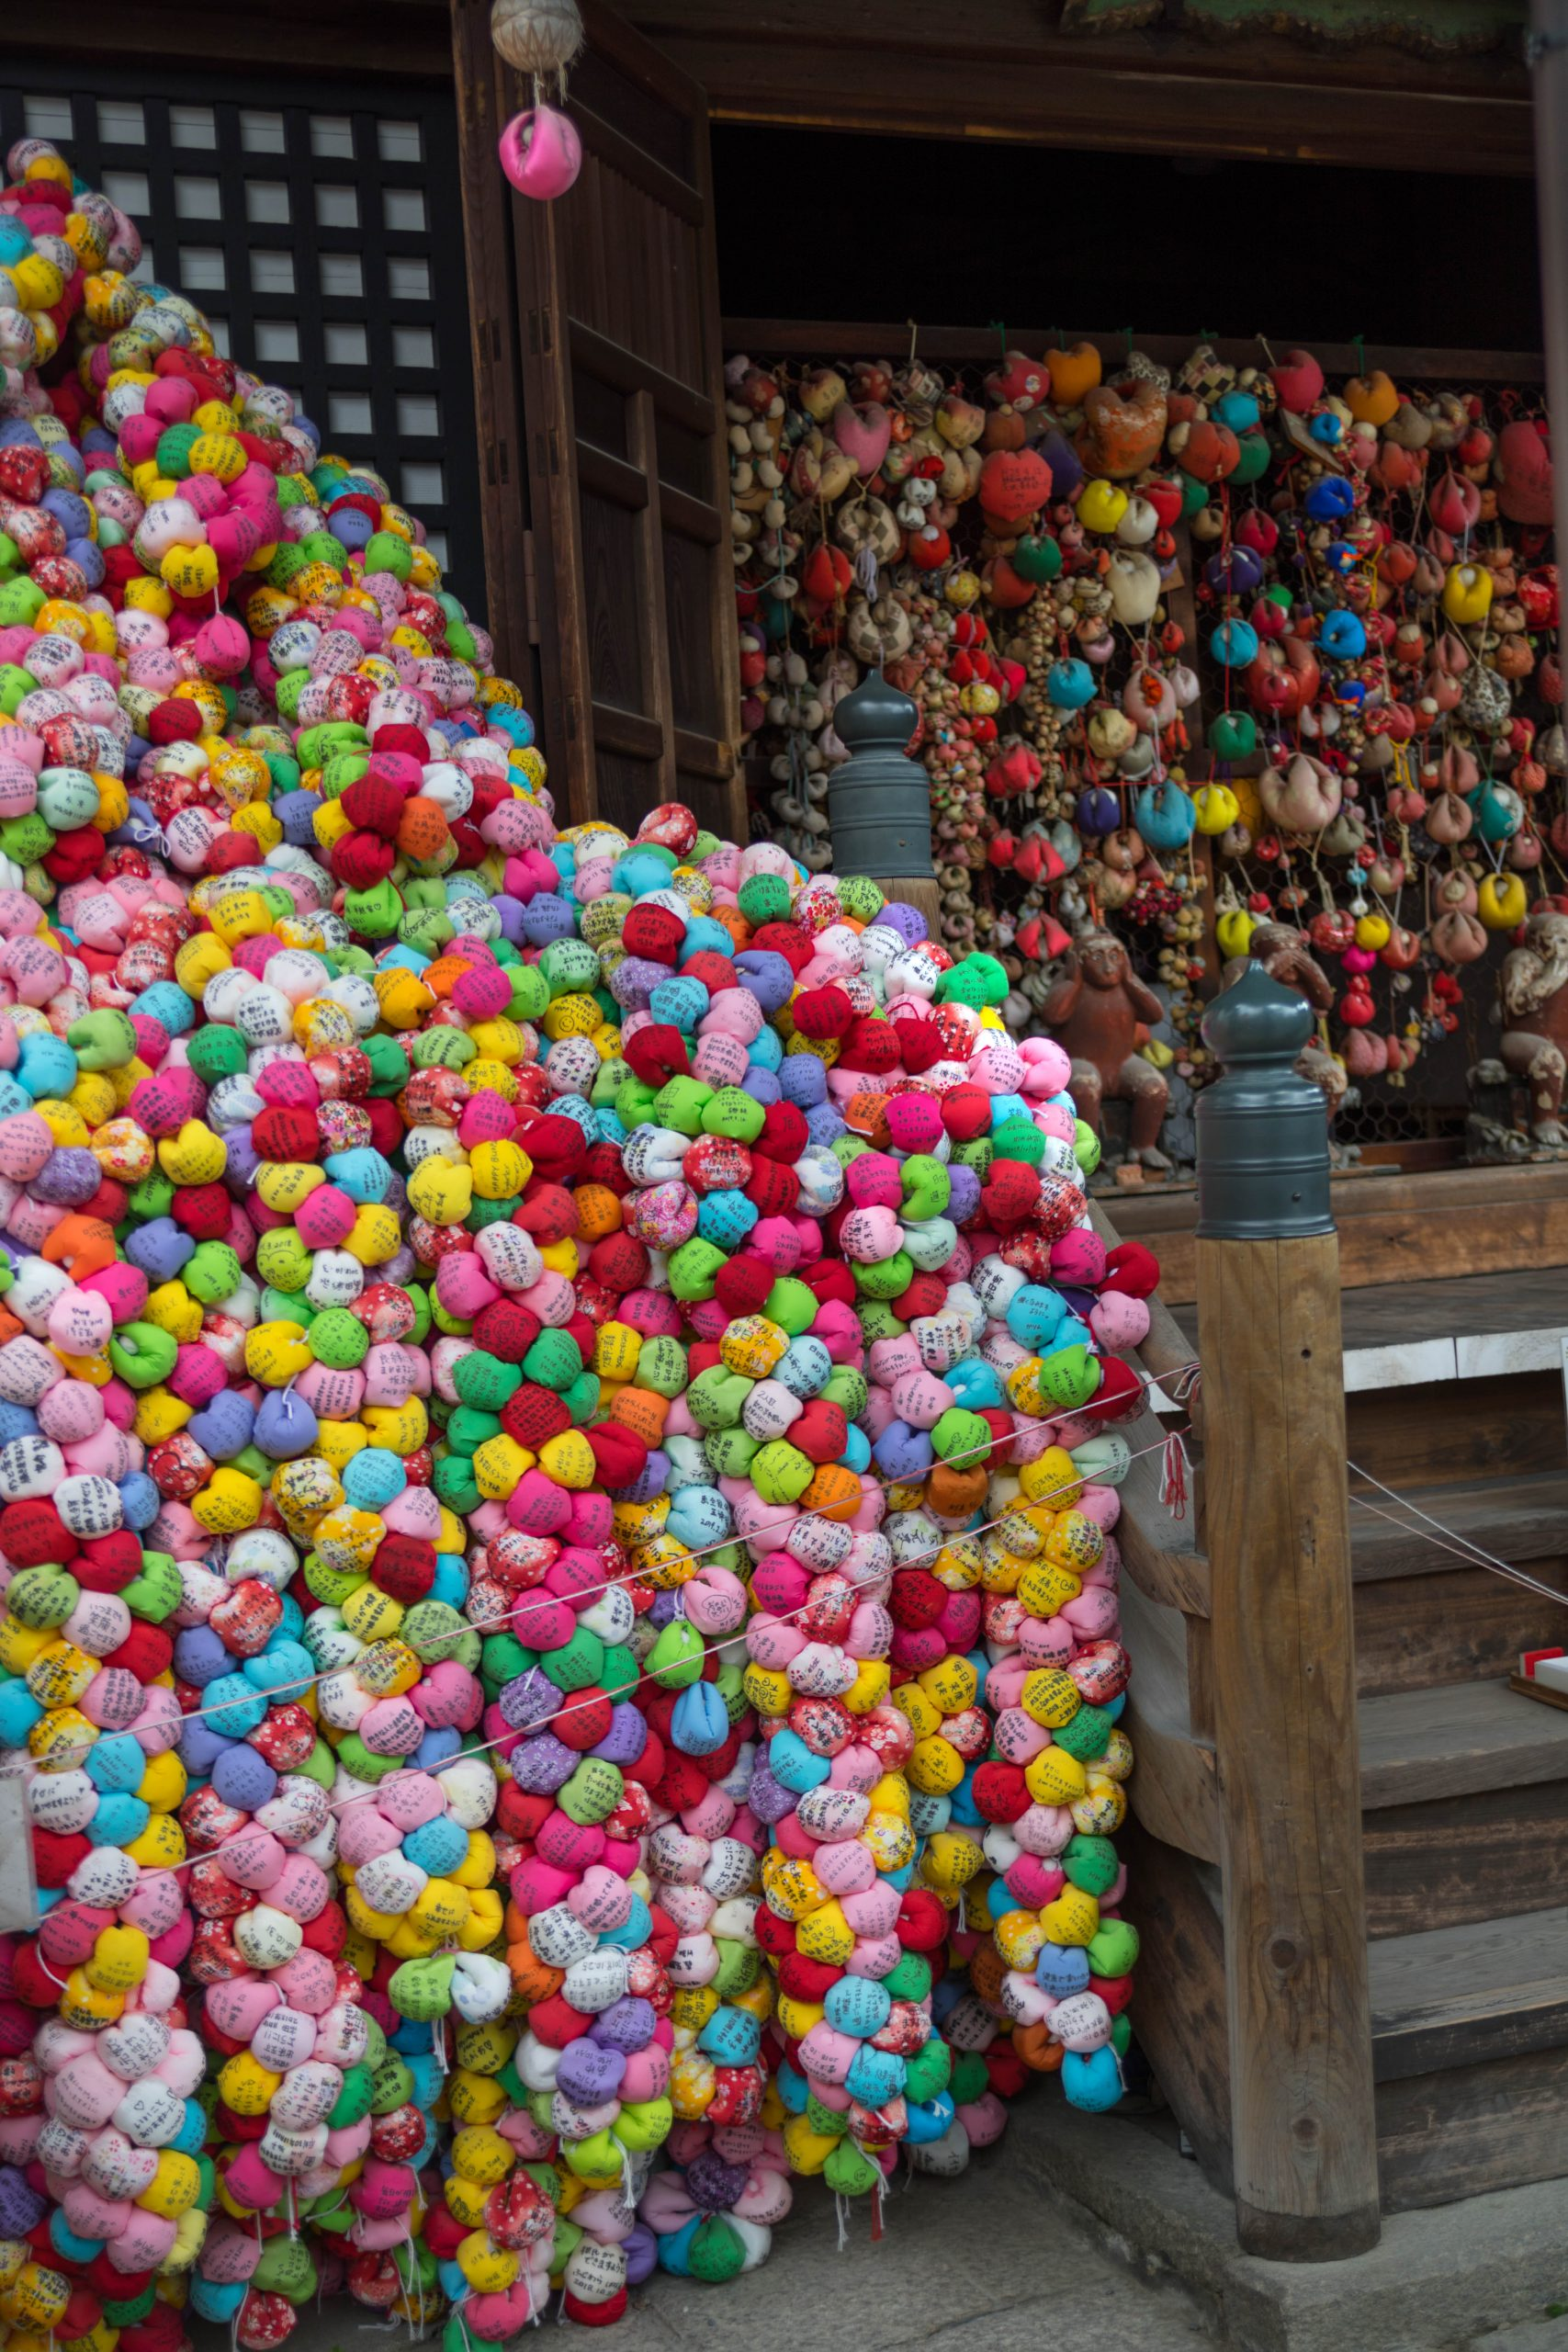 Yasaka Koshin-Do (Daikoku-san Kongo-ji Koshin-Do) Colorful Ball Kyoto Japan Love and Wishmaking Shrine in Higashiyama near Kiyomizu Dera Temple Kyoto, Japan Travel Guide by Annie Fairfax